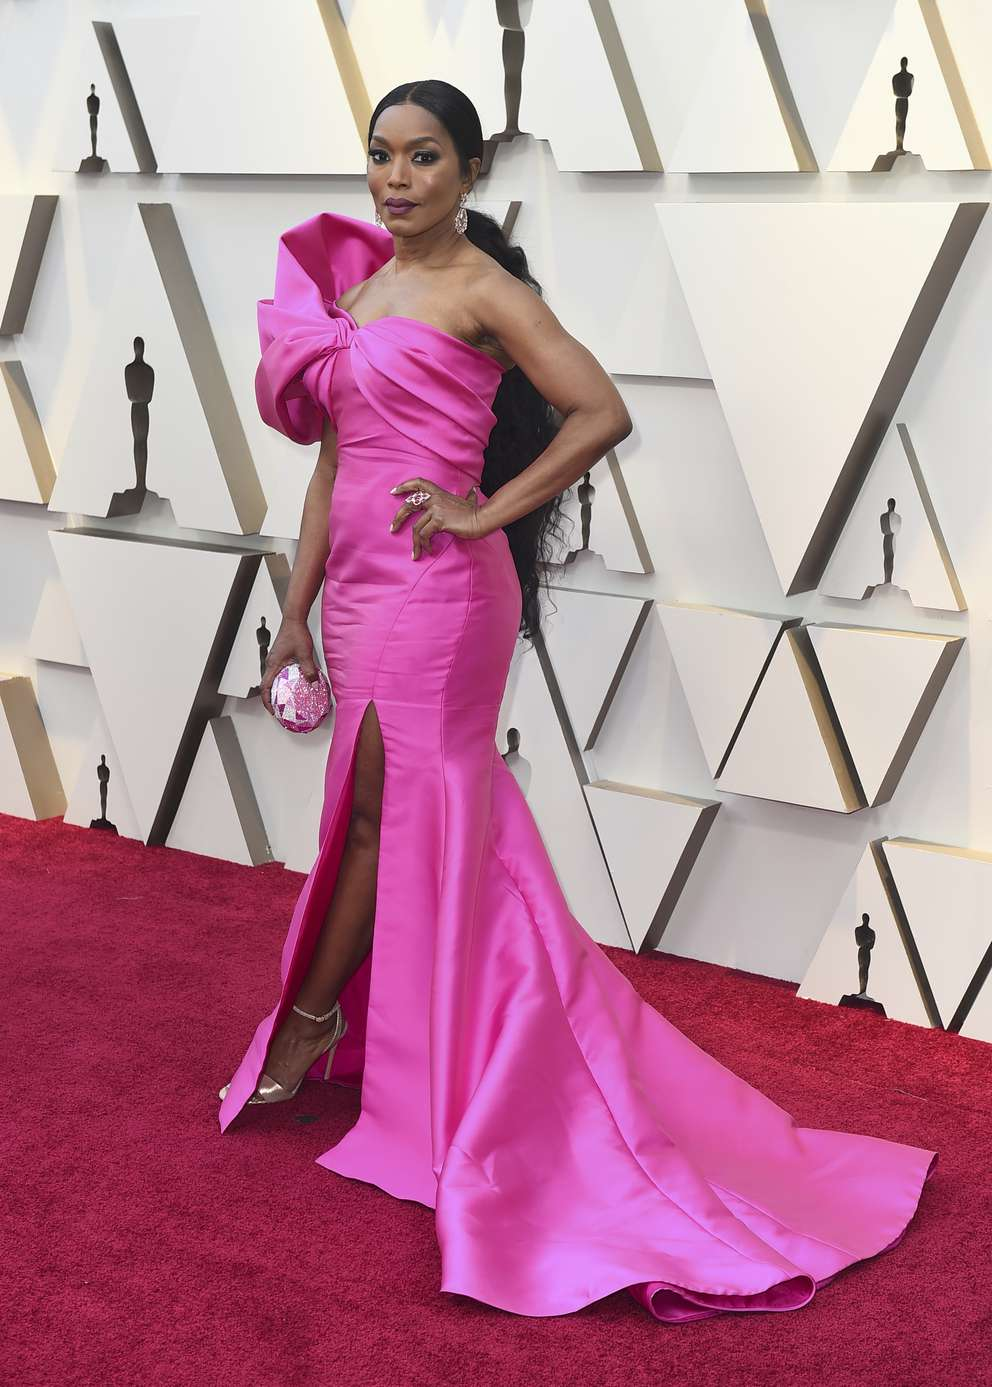 Angela Bassett arrives at the Oscars on Sunday, Feb. 24, 2019, at the Dolby Theatre in Los Angeles. Photo by Jordan Strauss/Invision/AP